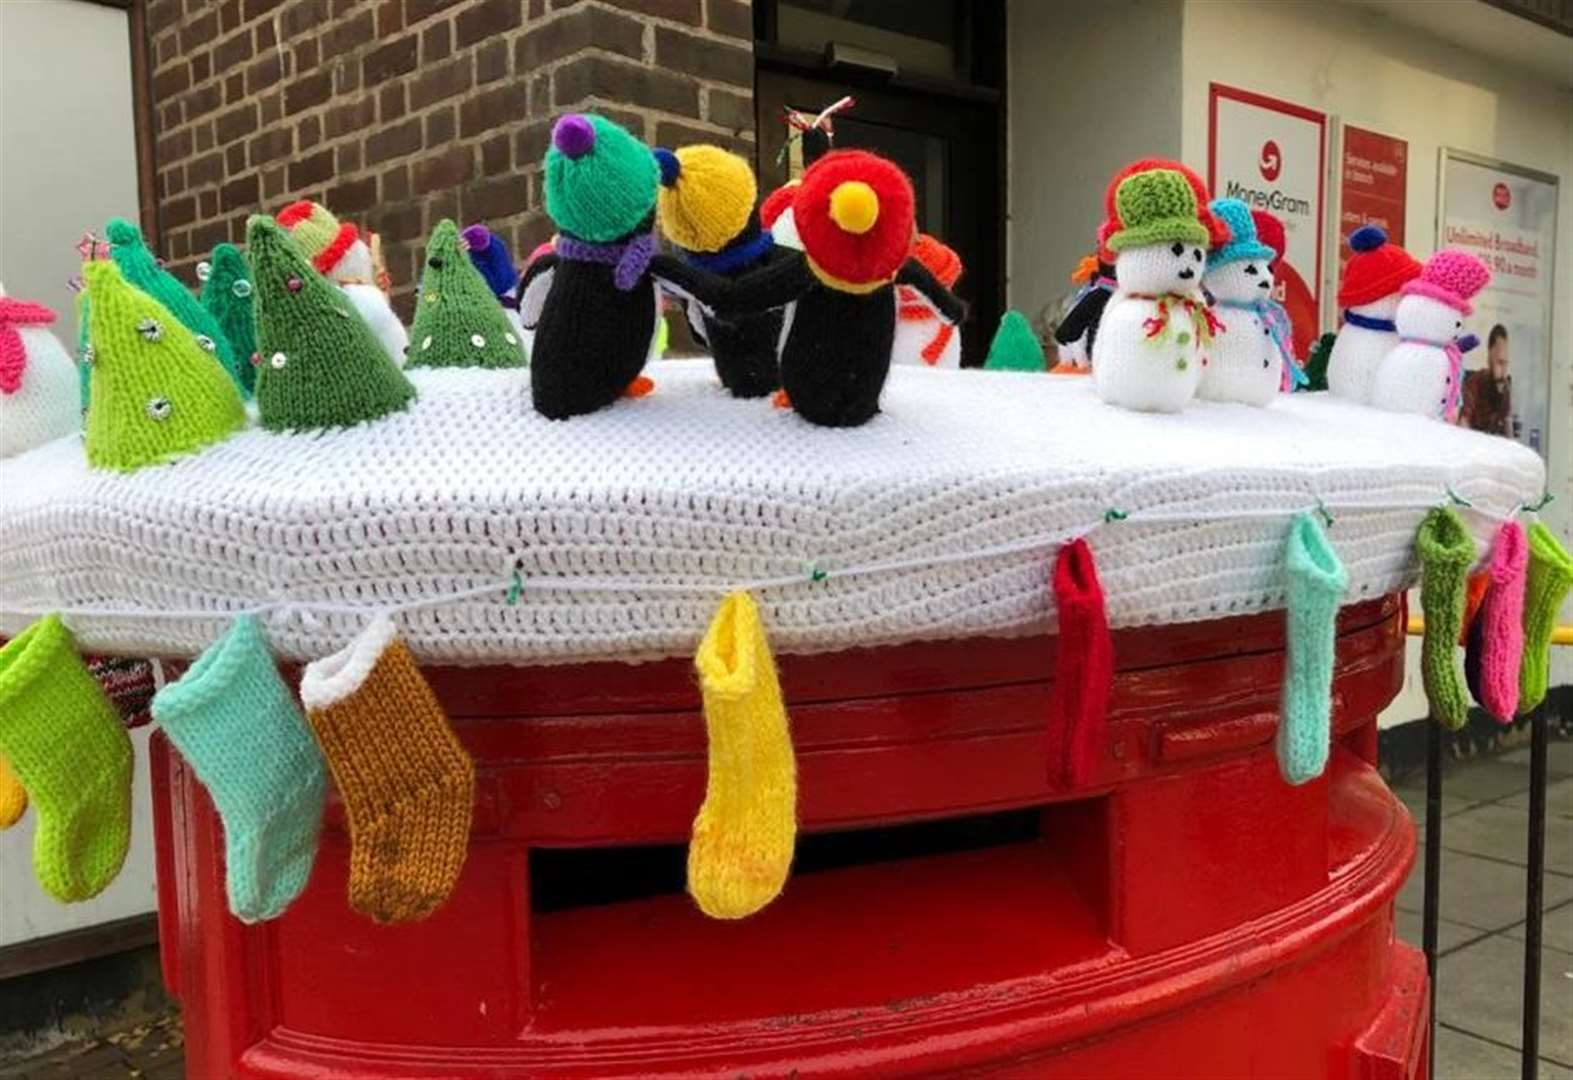 Knitters deliver festive cheer across town